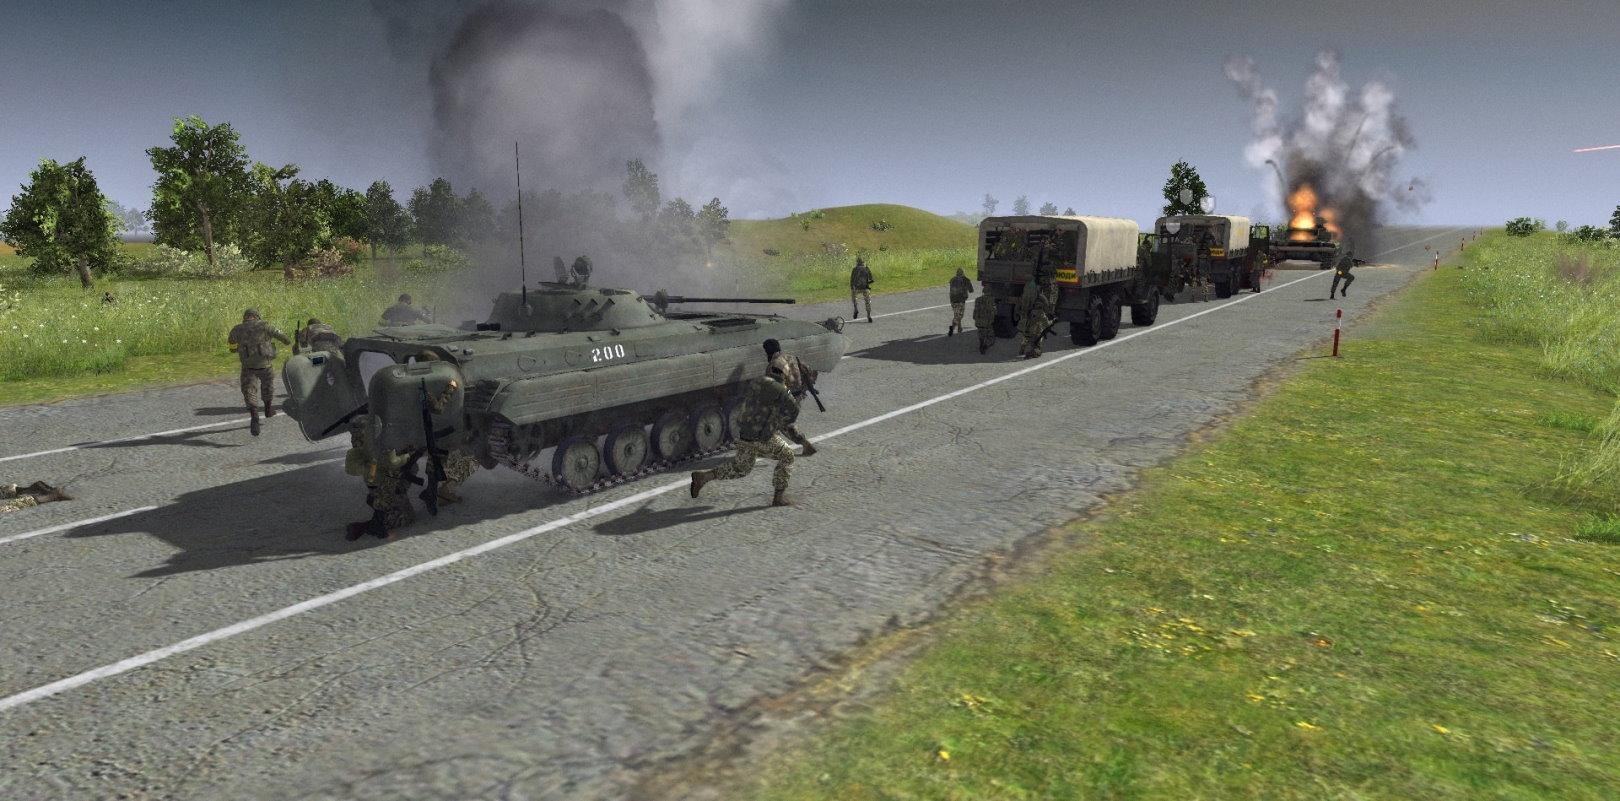 Russian Spring in Donbass (CW 1.7.2) (AS2 — 3.262.0) (v31.08.2021)